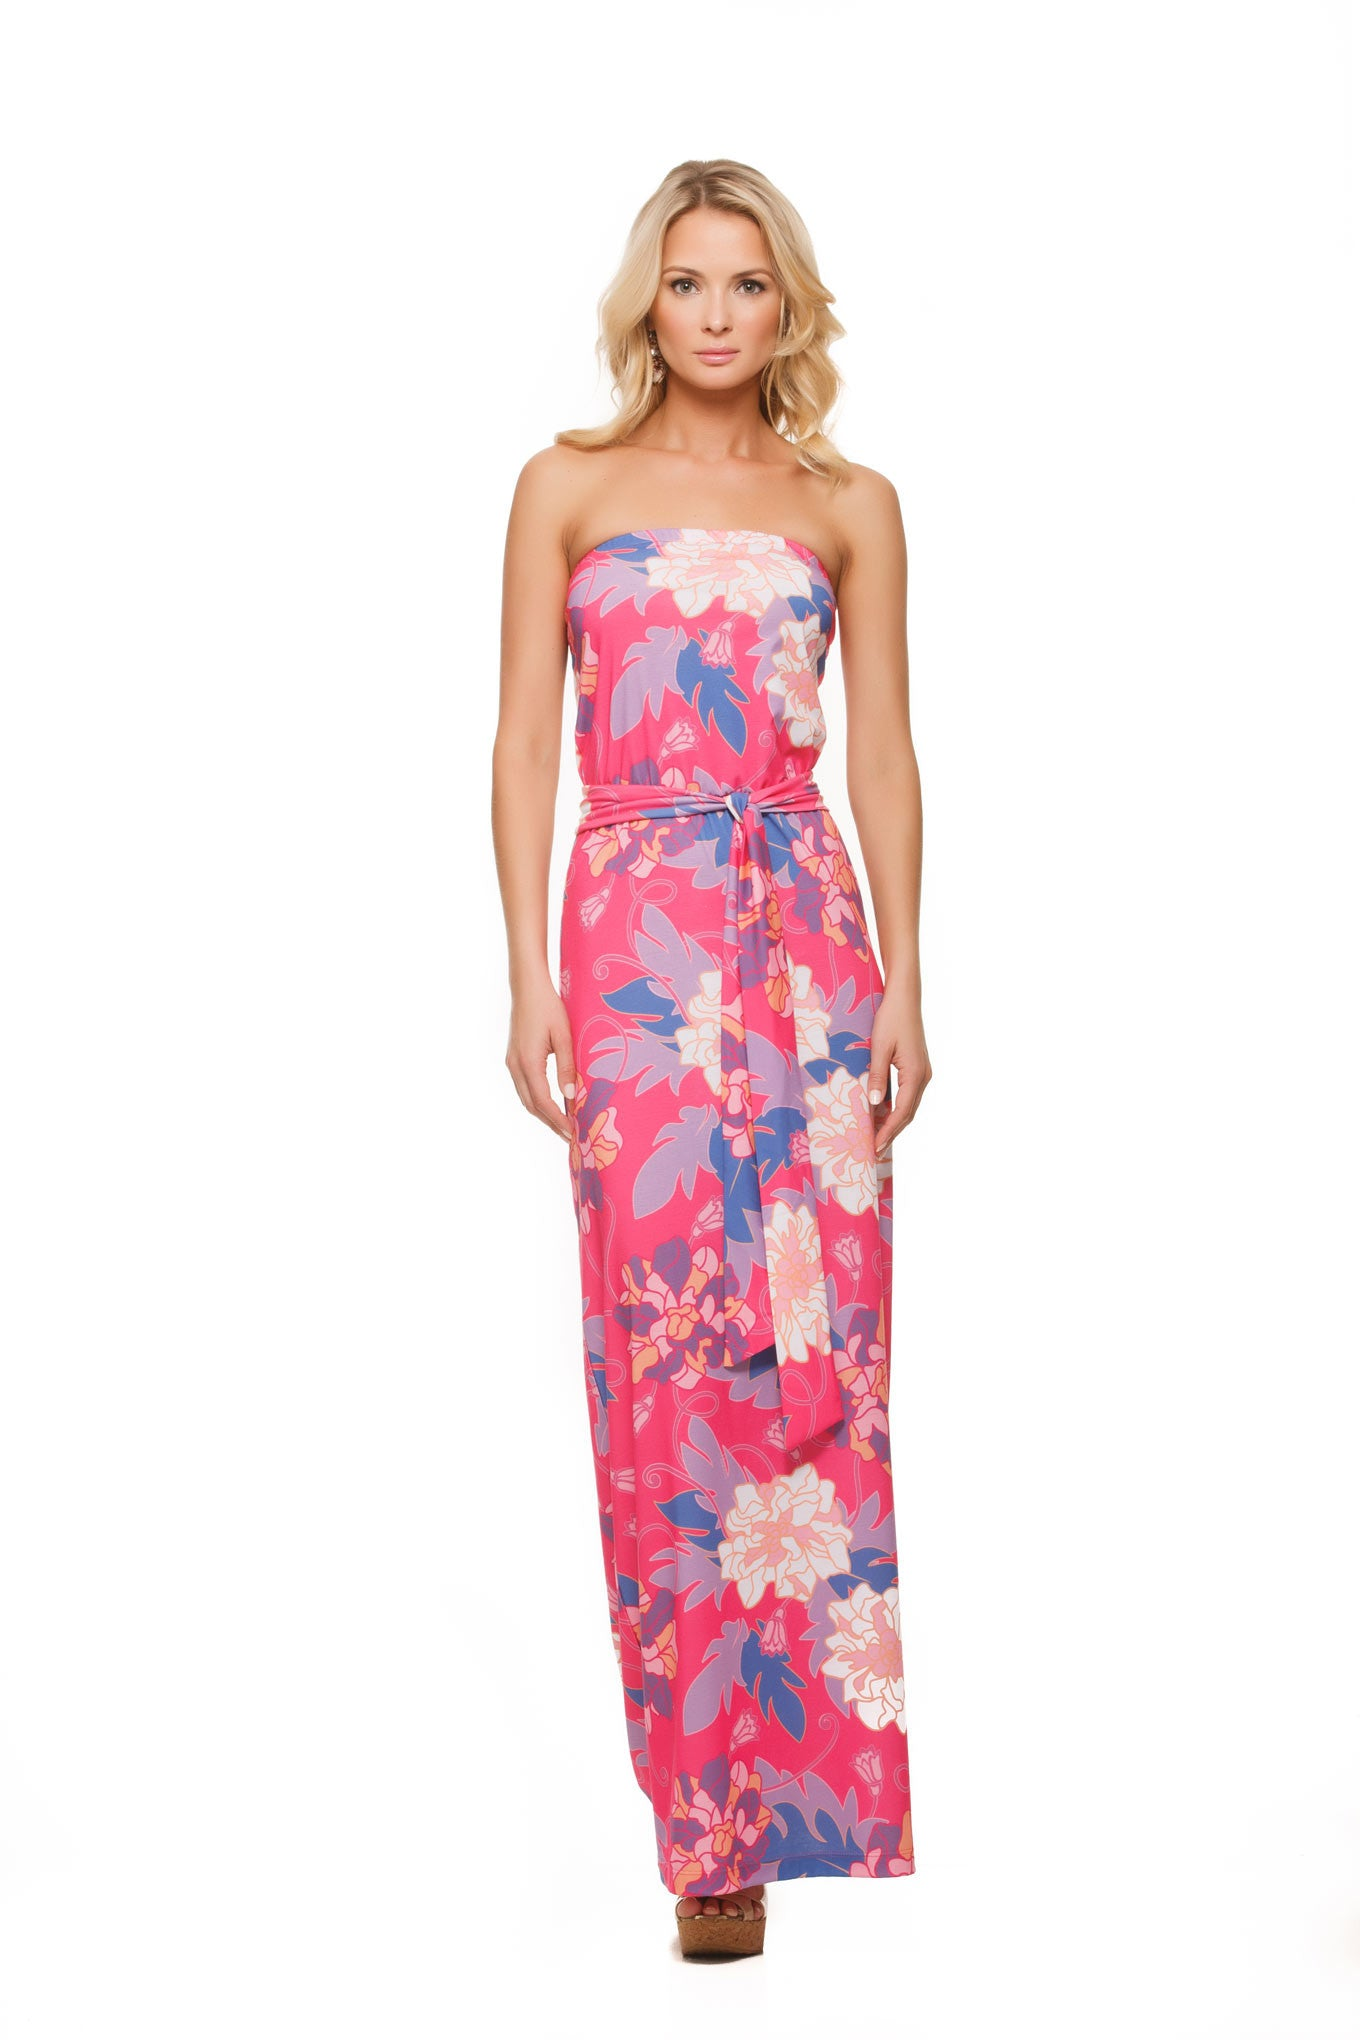 Resort Wear for Women | Resort Wear Trends | Summer Maxi Dresses ...